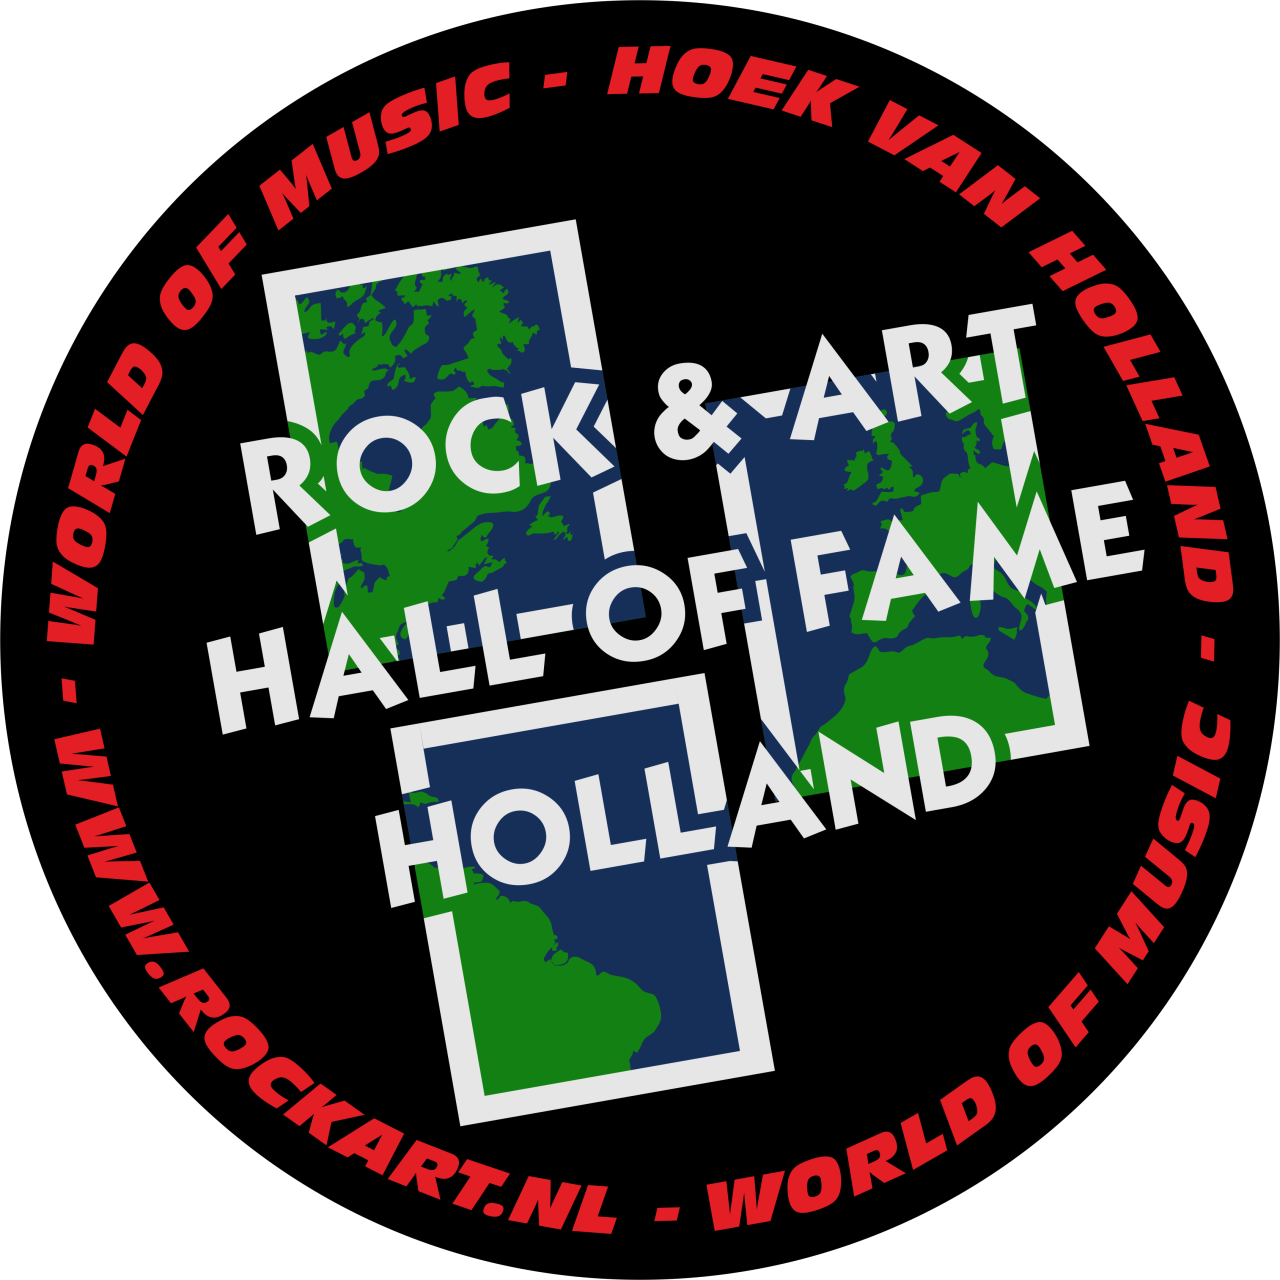 Stichting Museum Rock-Art Hall of Fame Holland